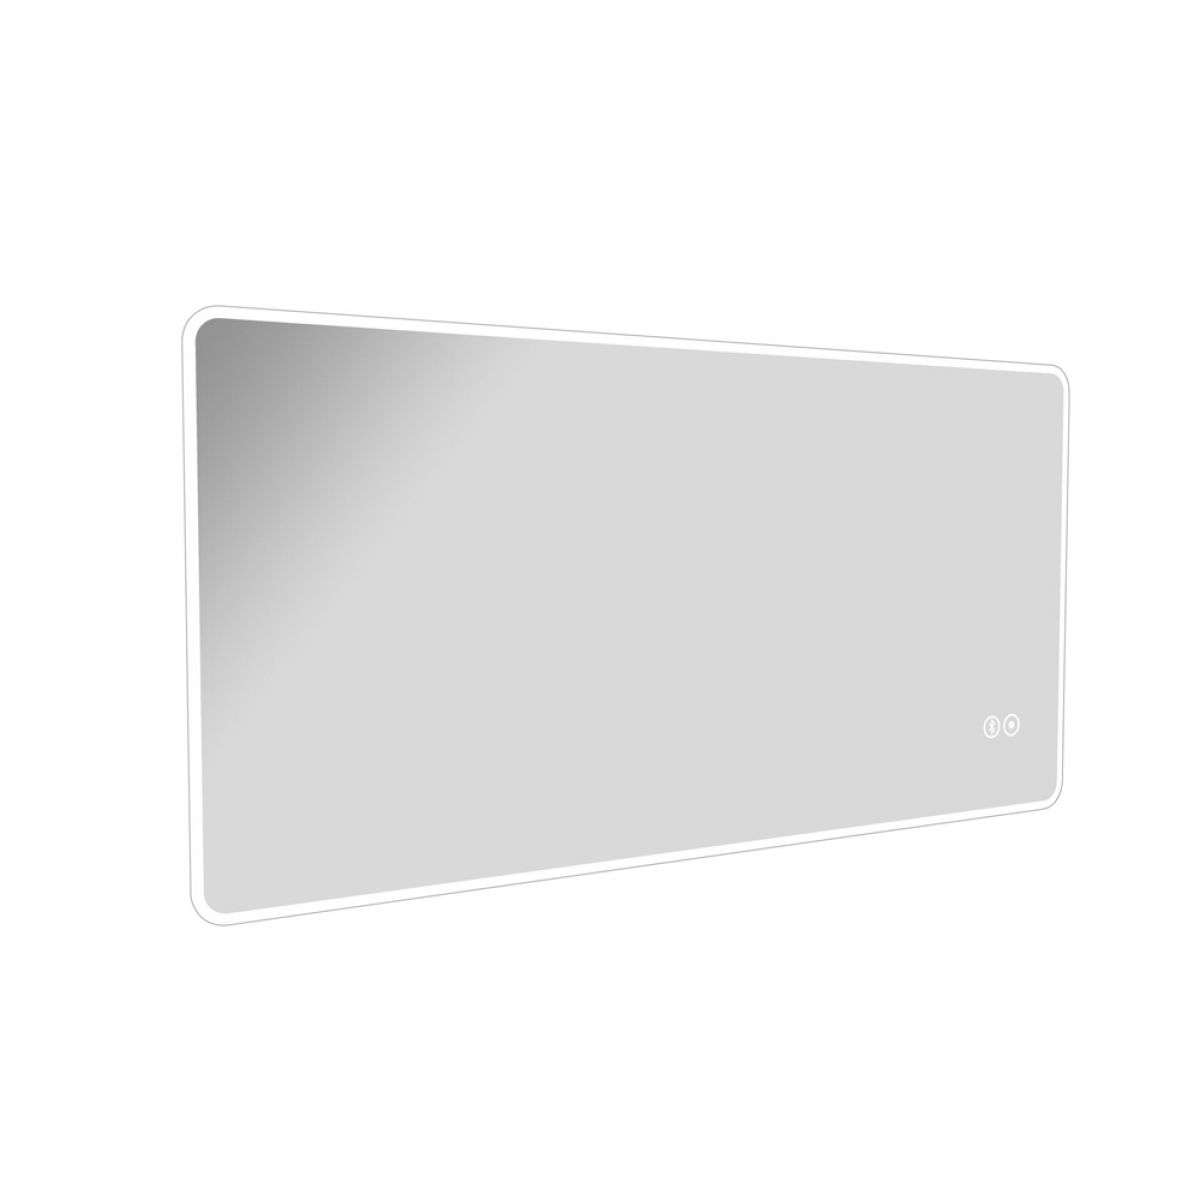 Cassellie Widestyle Ambient Illuminated LED Mirror